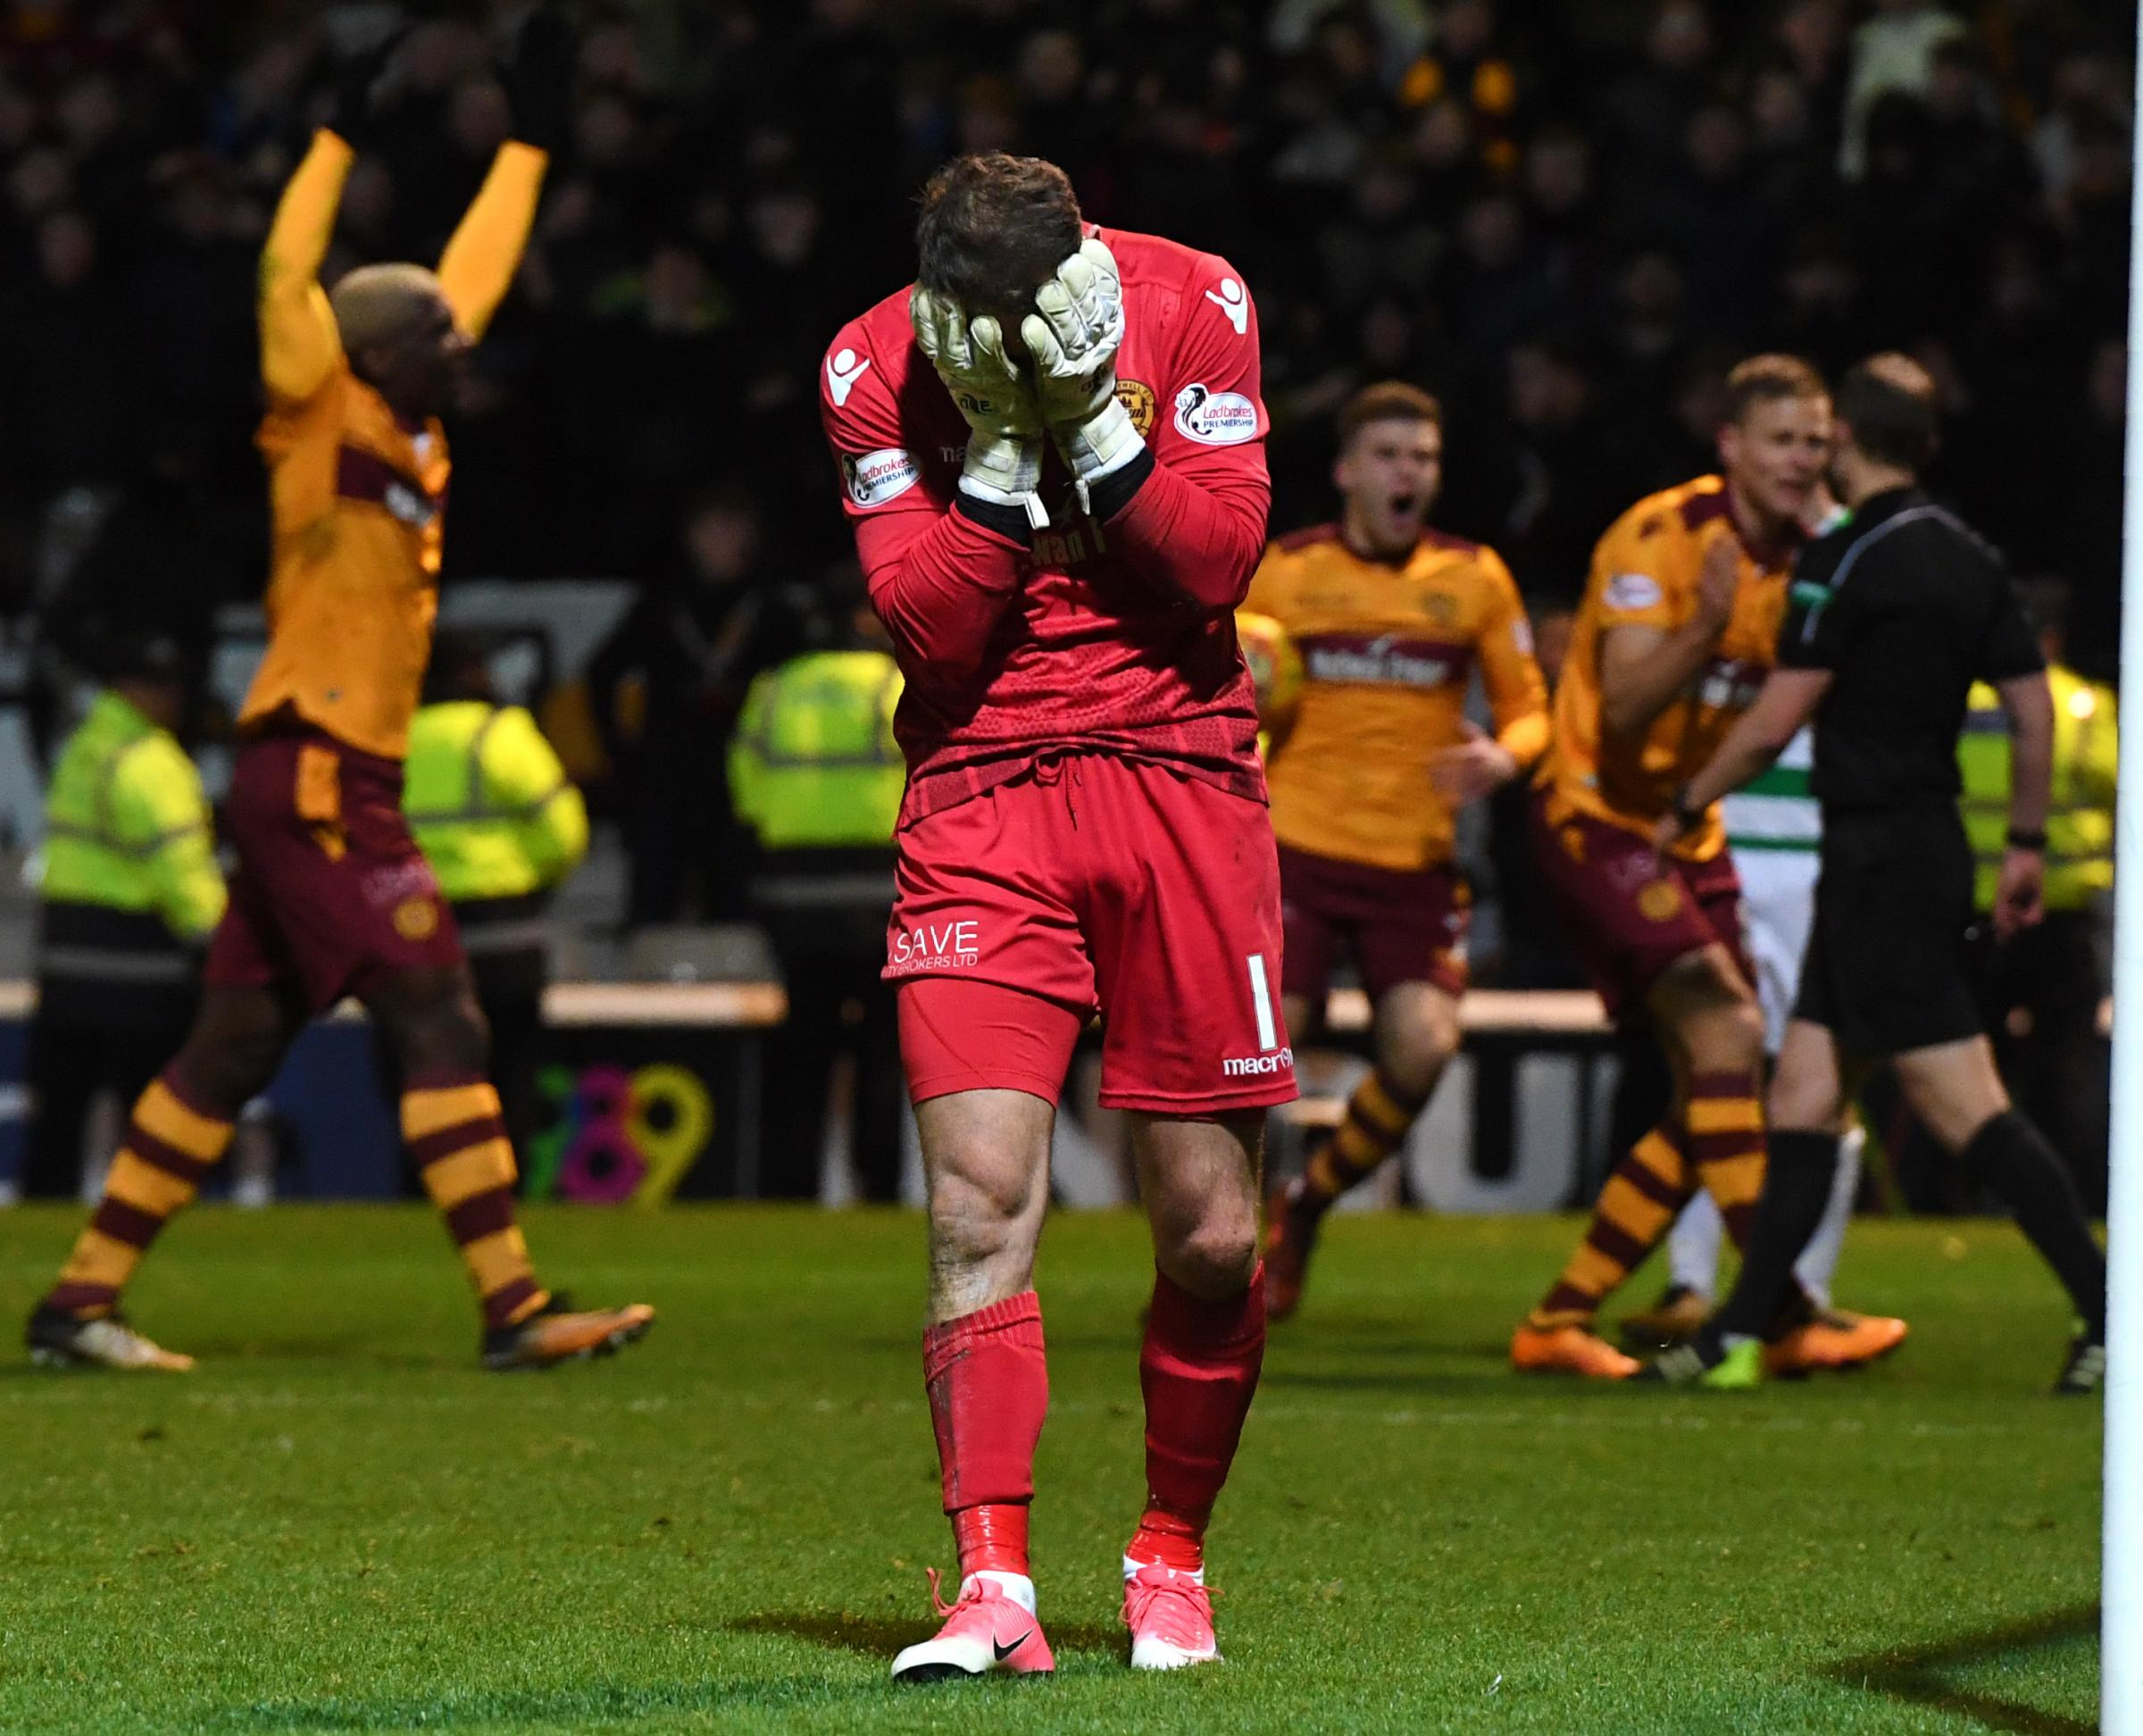 Motherwell keeper Trevor Carson couldn't believe that Willie Collum awarded Celtic a penalty in the draw between the sides on Wednesday night.